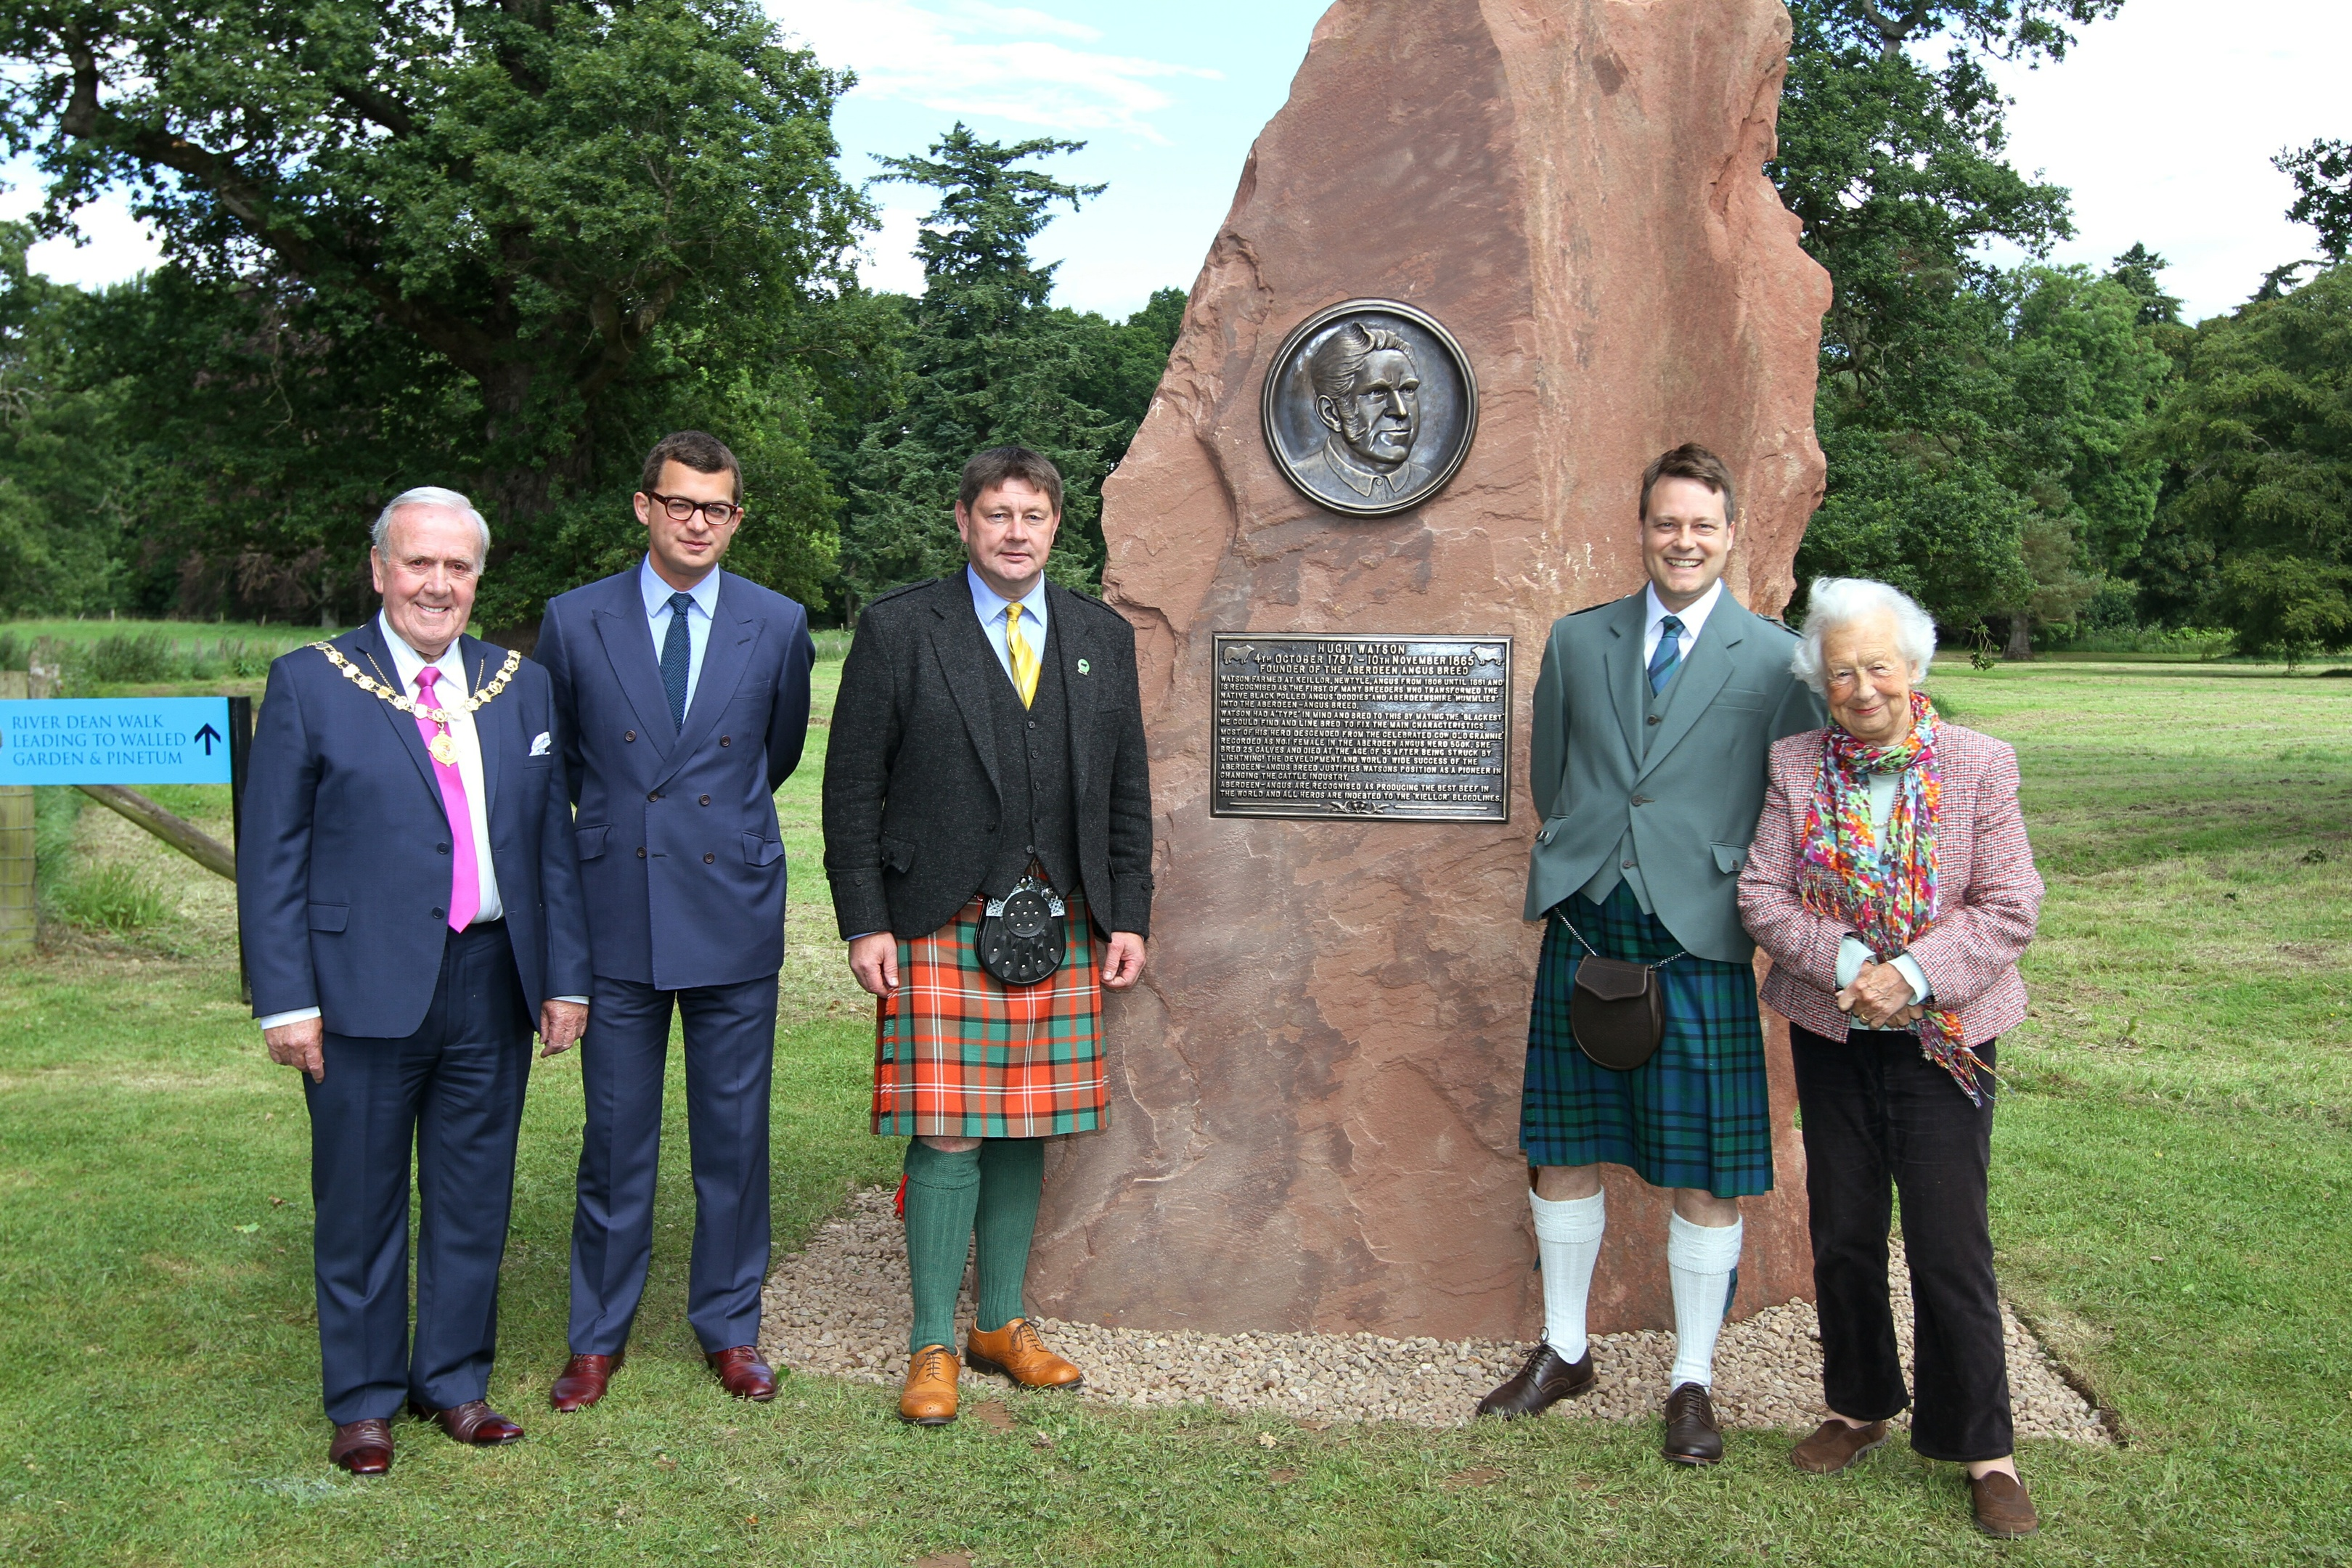 From left - Angus depute Provost Colin Brown, Lord Strathmore, Alex Sanger, Roddy Mathieson, and Mary, Dowager Countess Strathmore